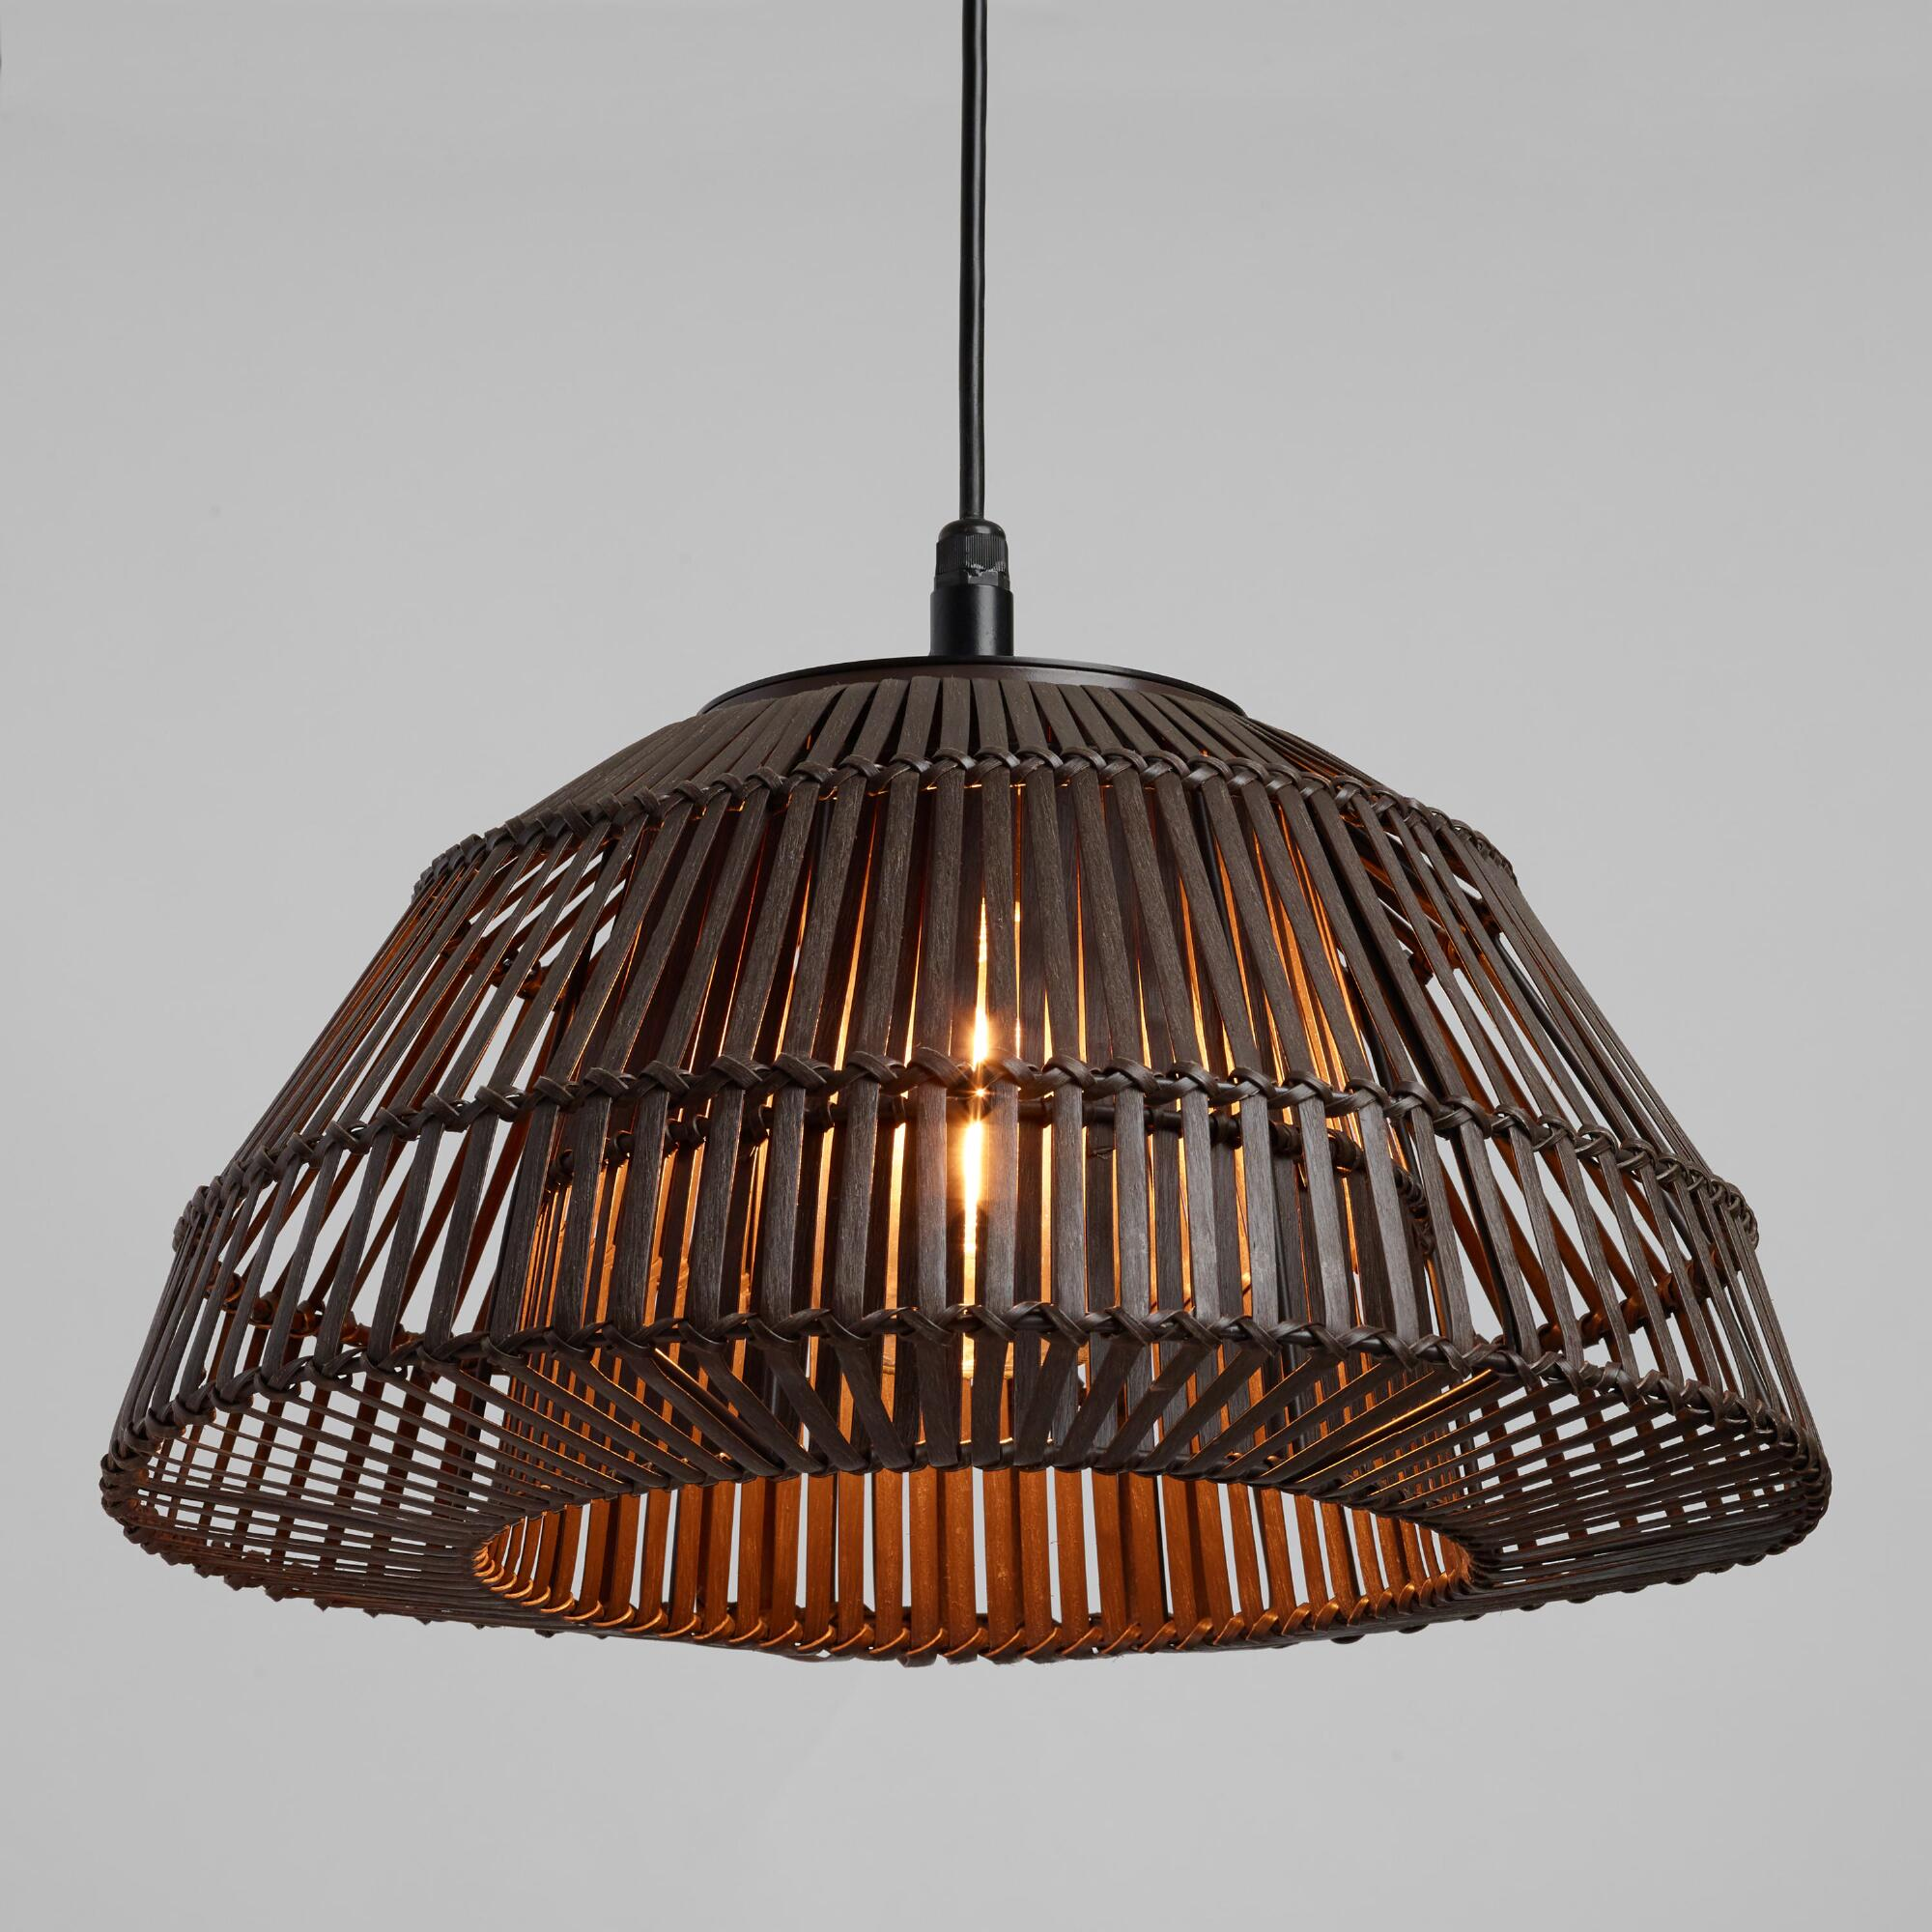 Gray Woven Rattan Dome Outdoor Patio Pendant Shade By World